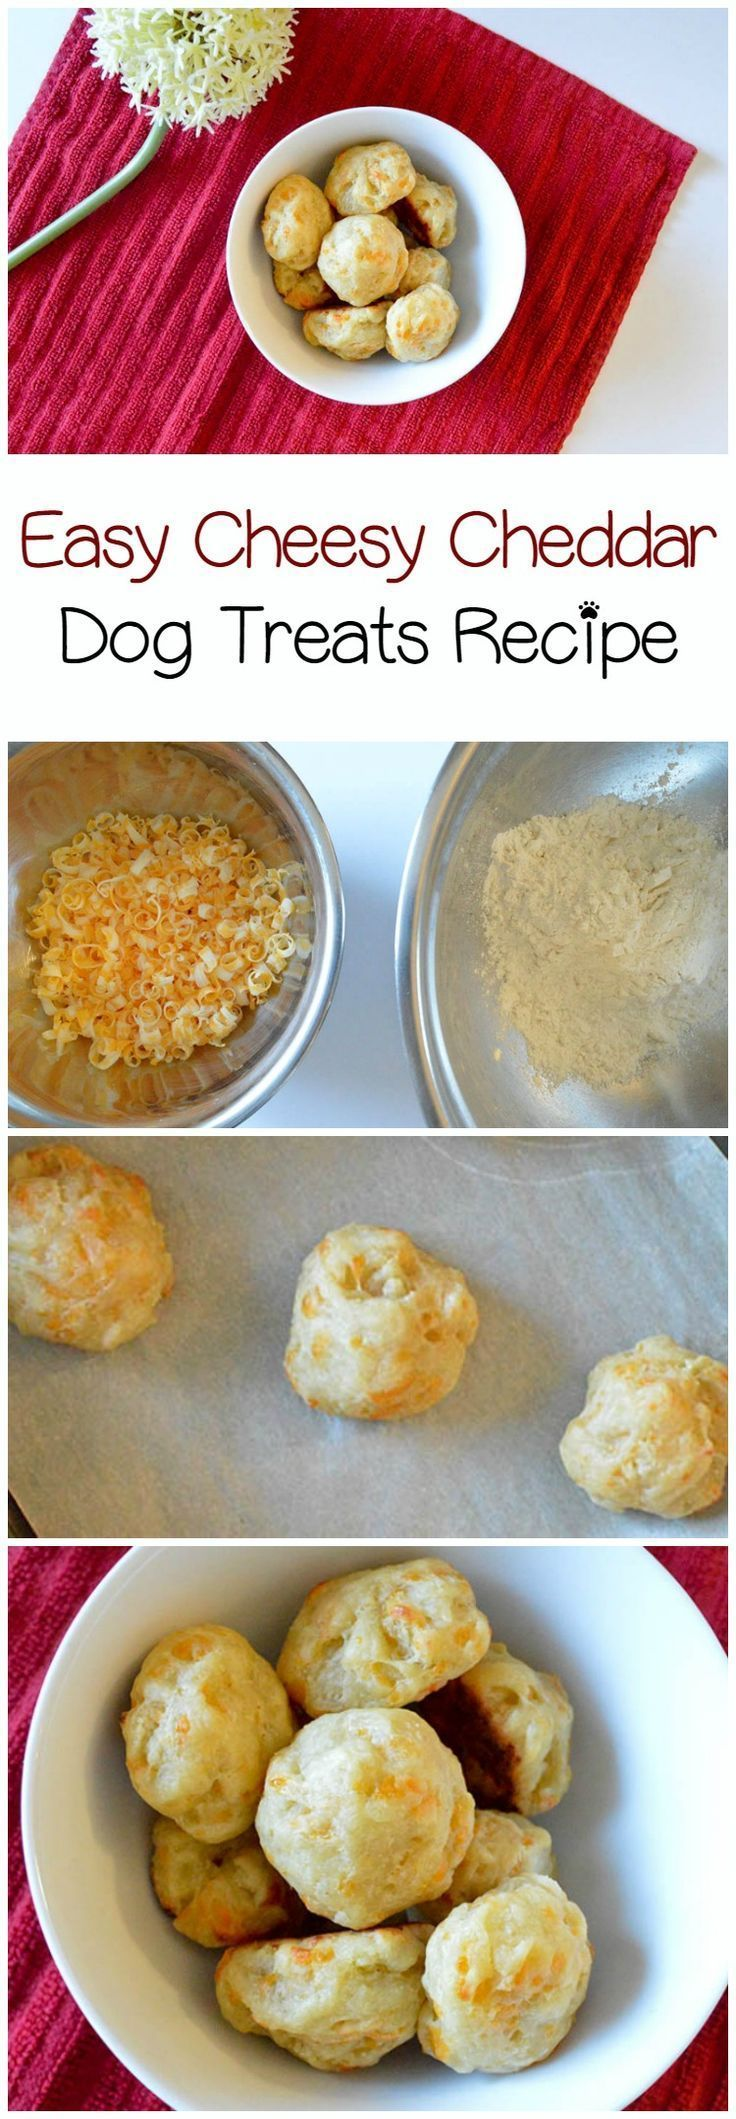 Reward your dog's excellent behavior with a homemade dog treat! Our easy cheesy cheddar dog treat recipe will become a quick favorite!